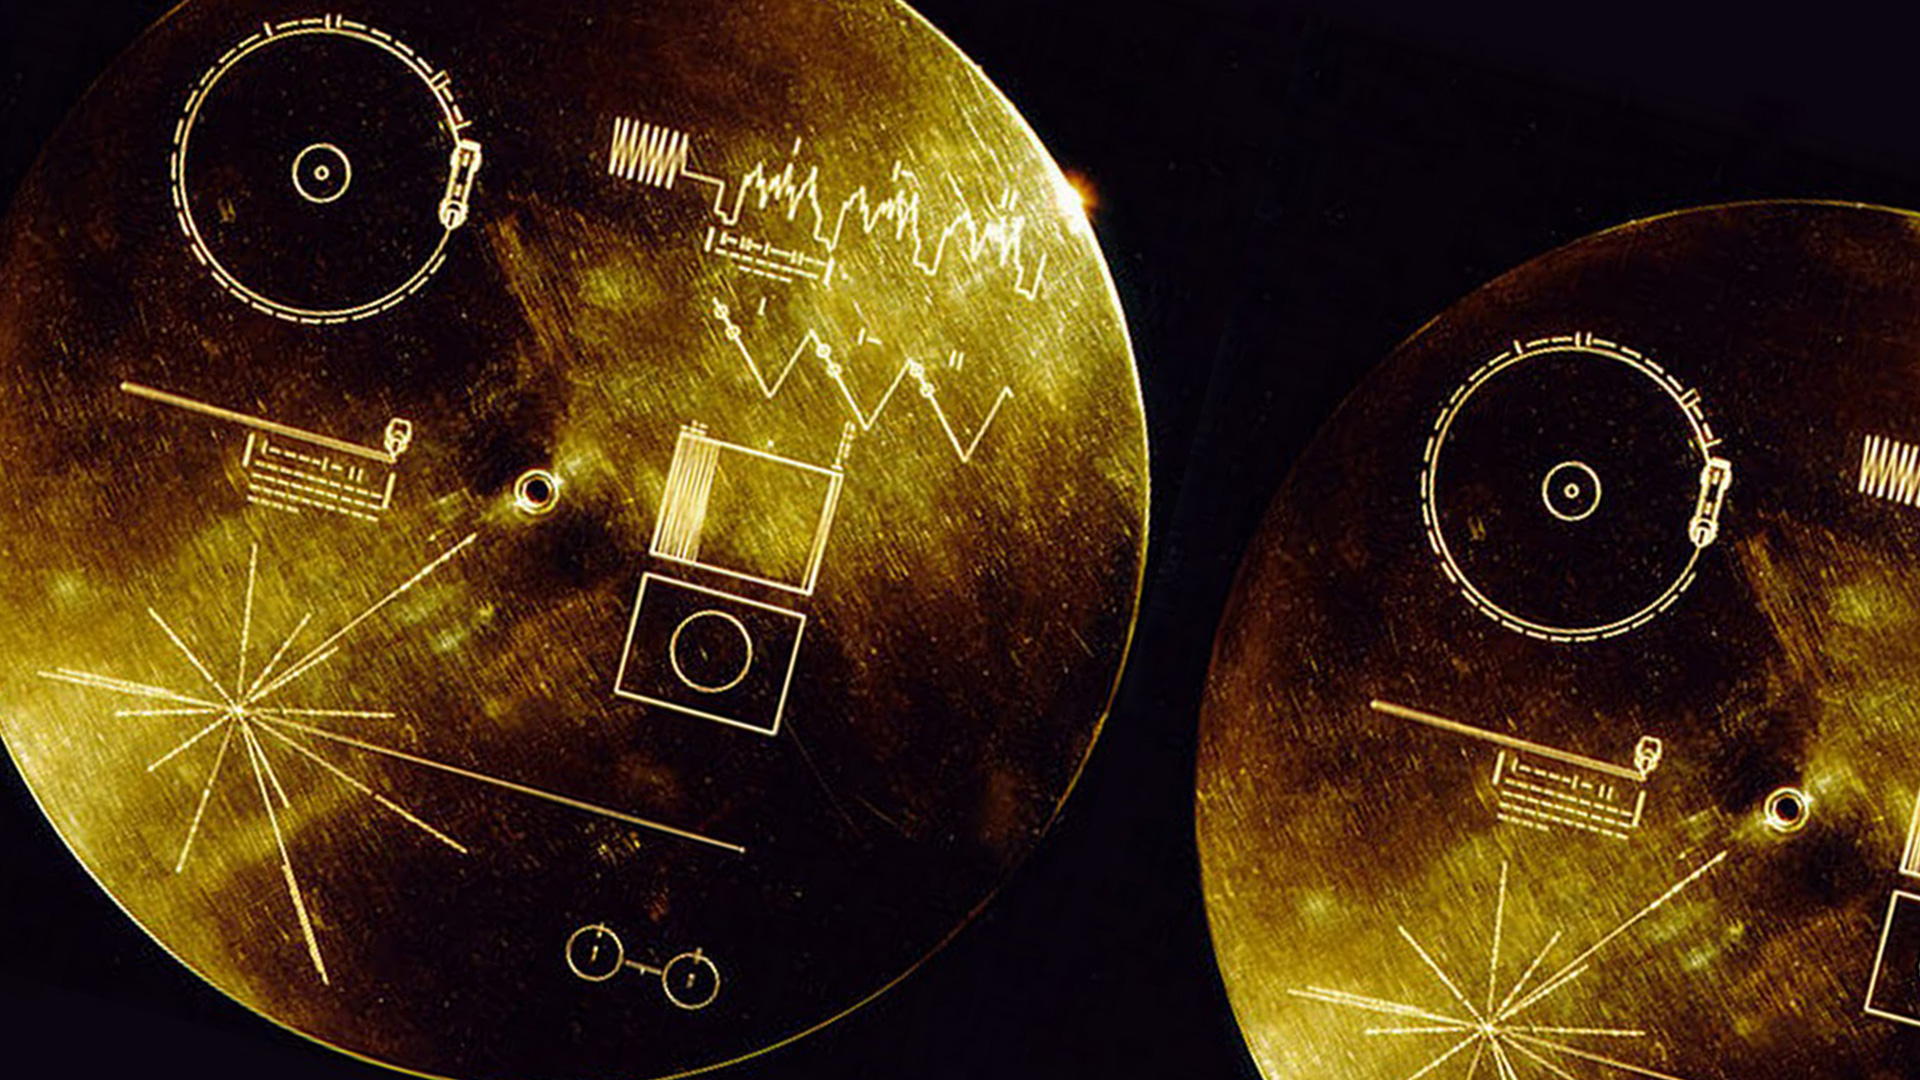 Golden Record - Nasa - Voyager